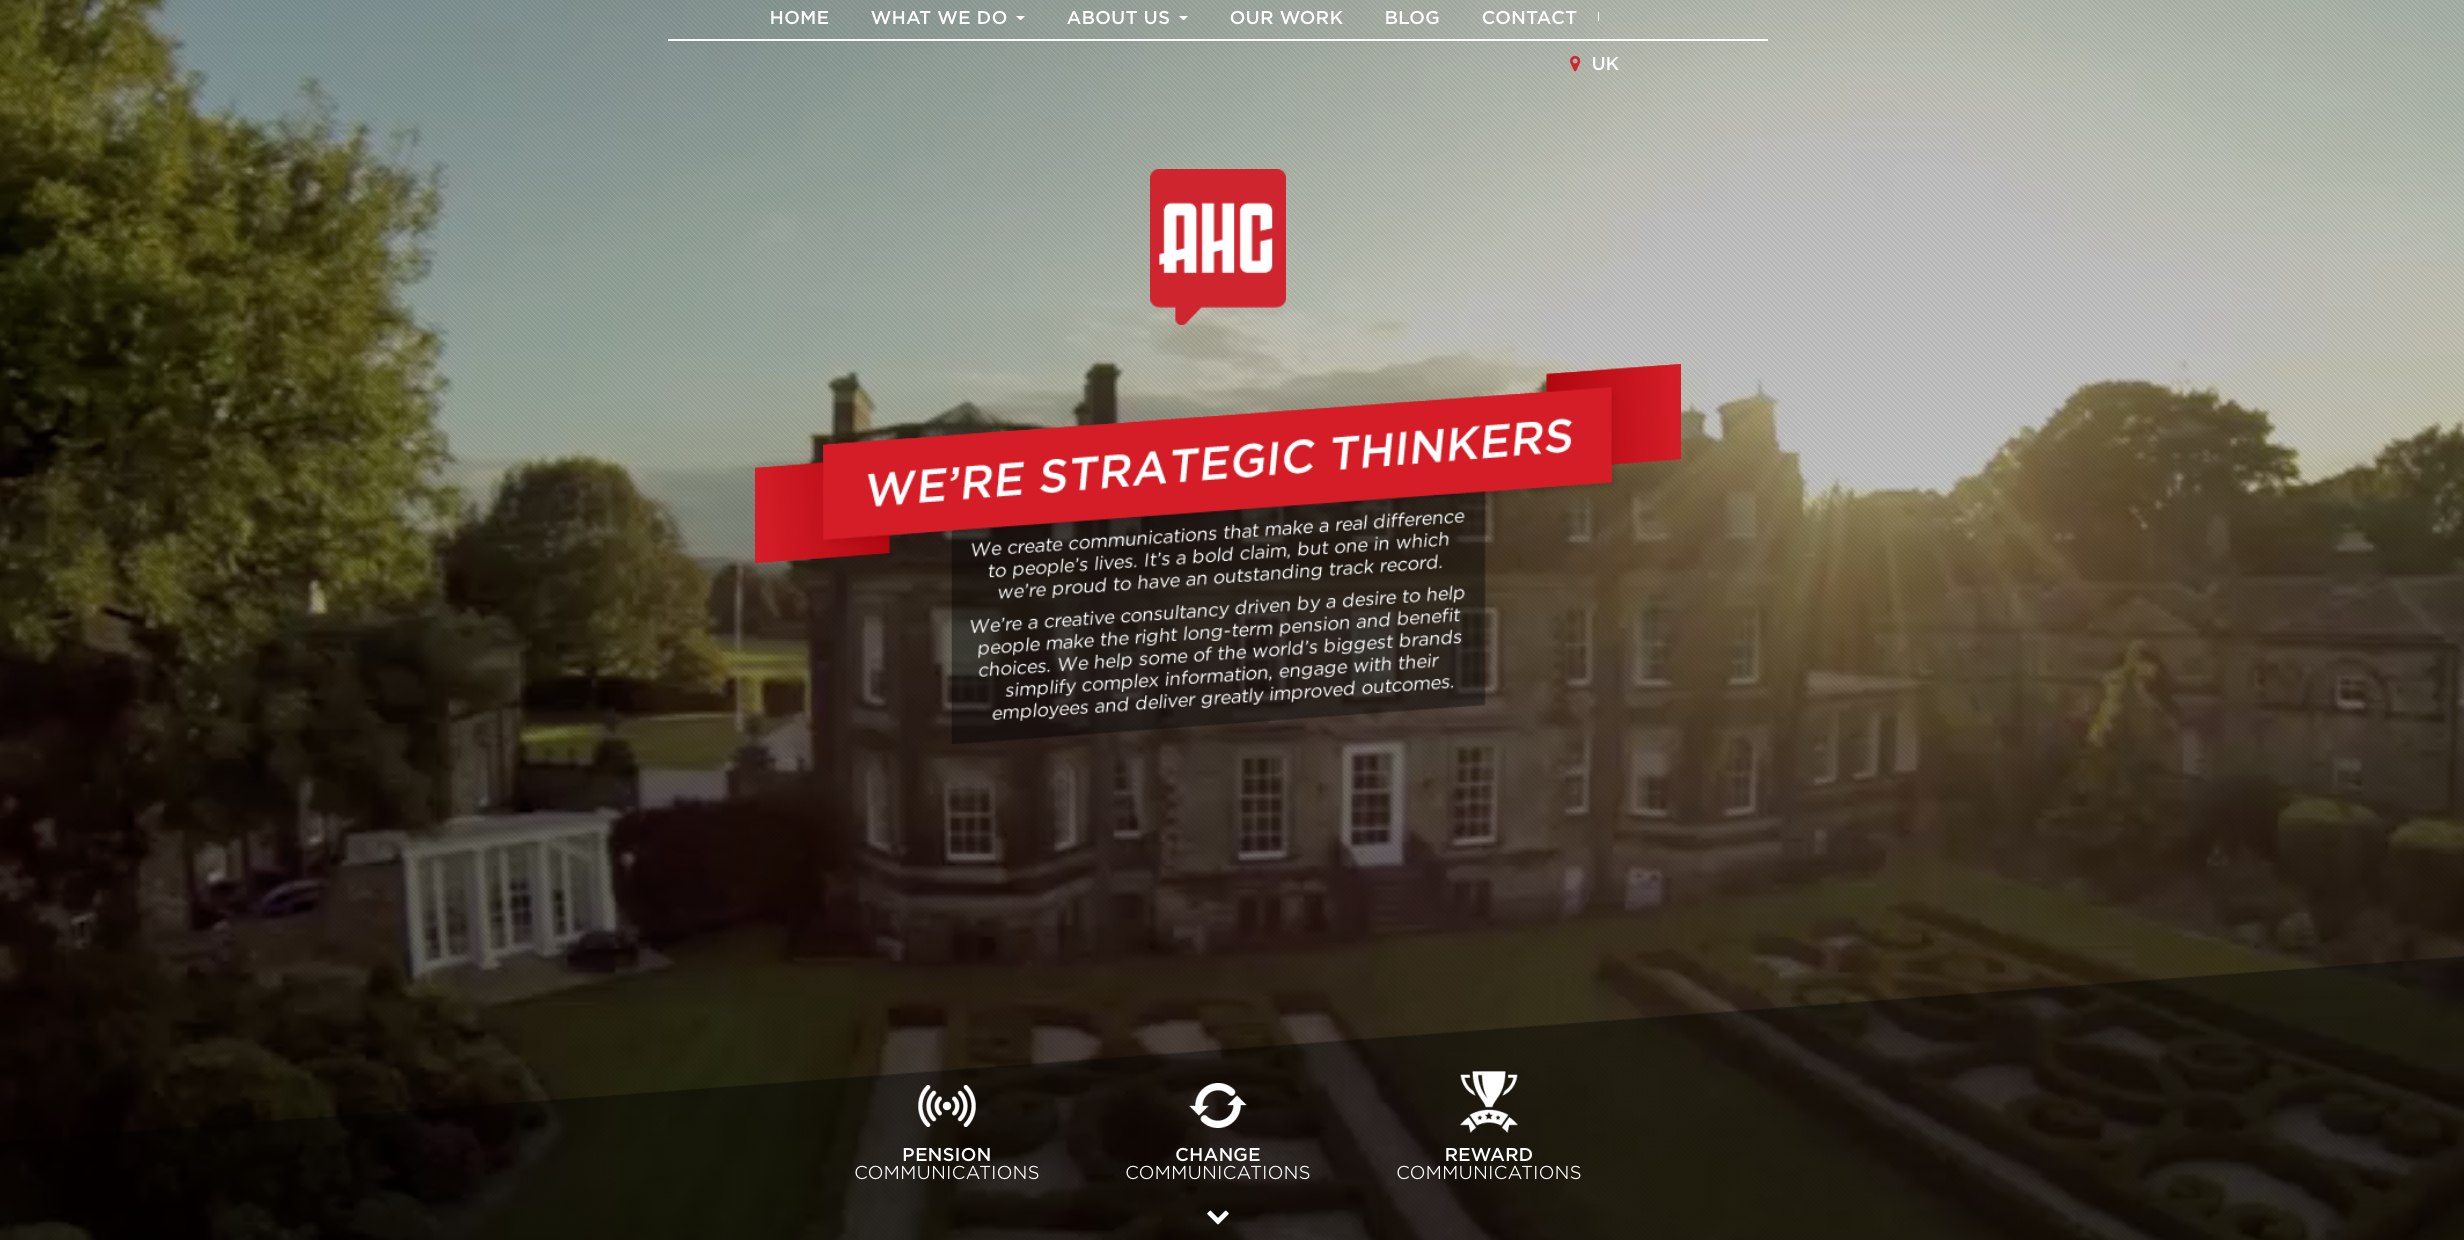 The new AHC website